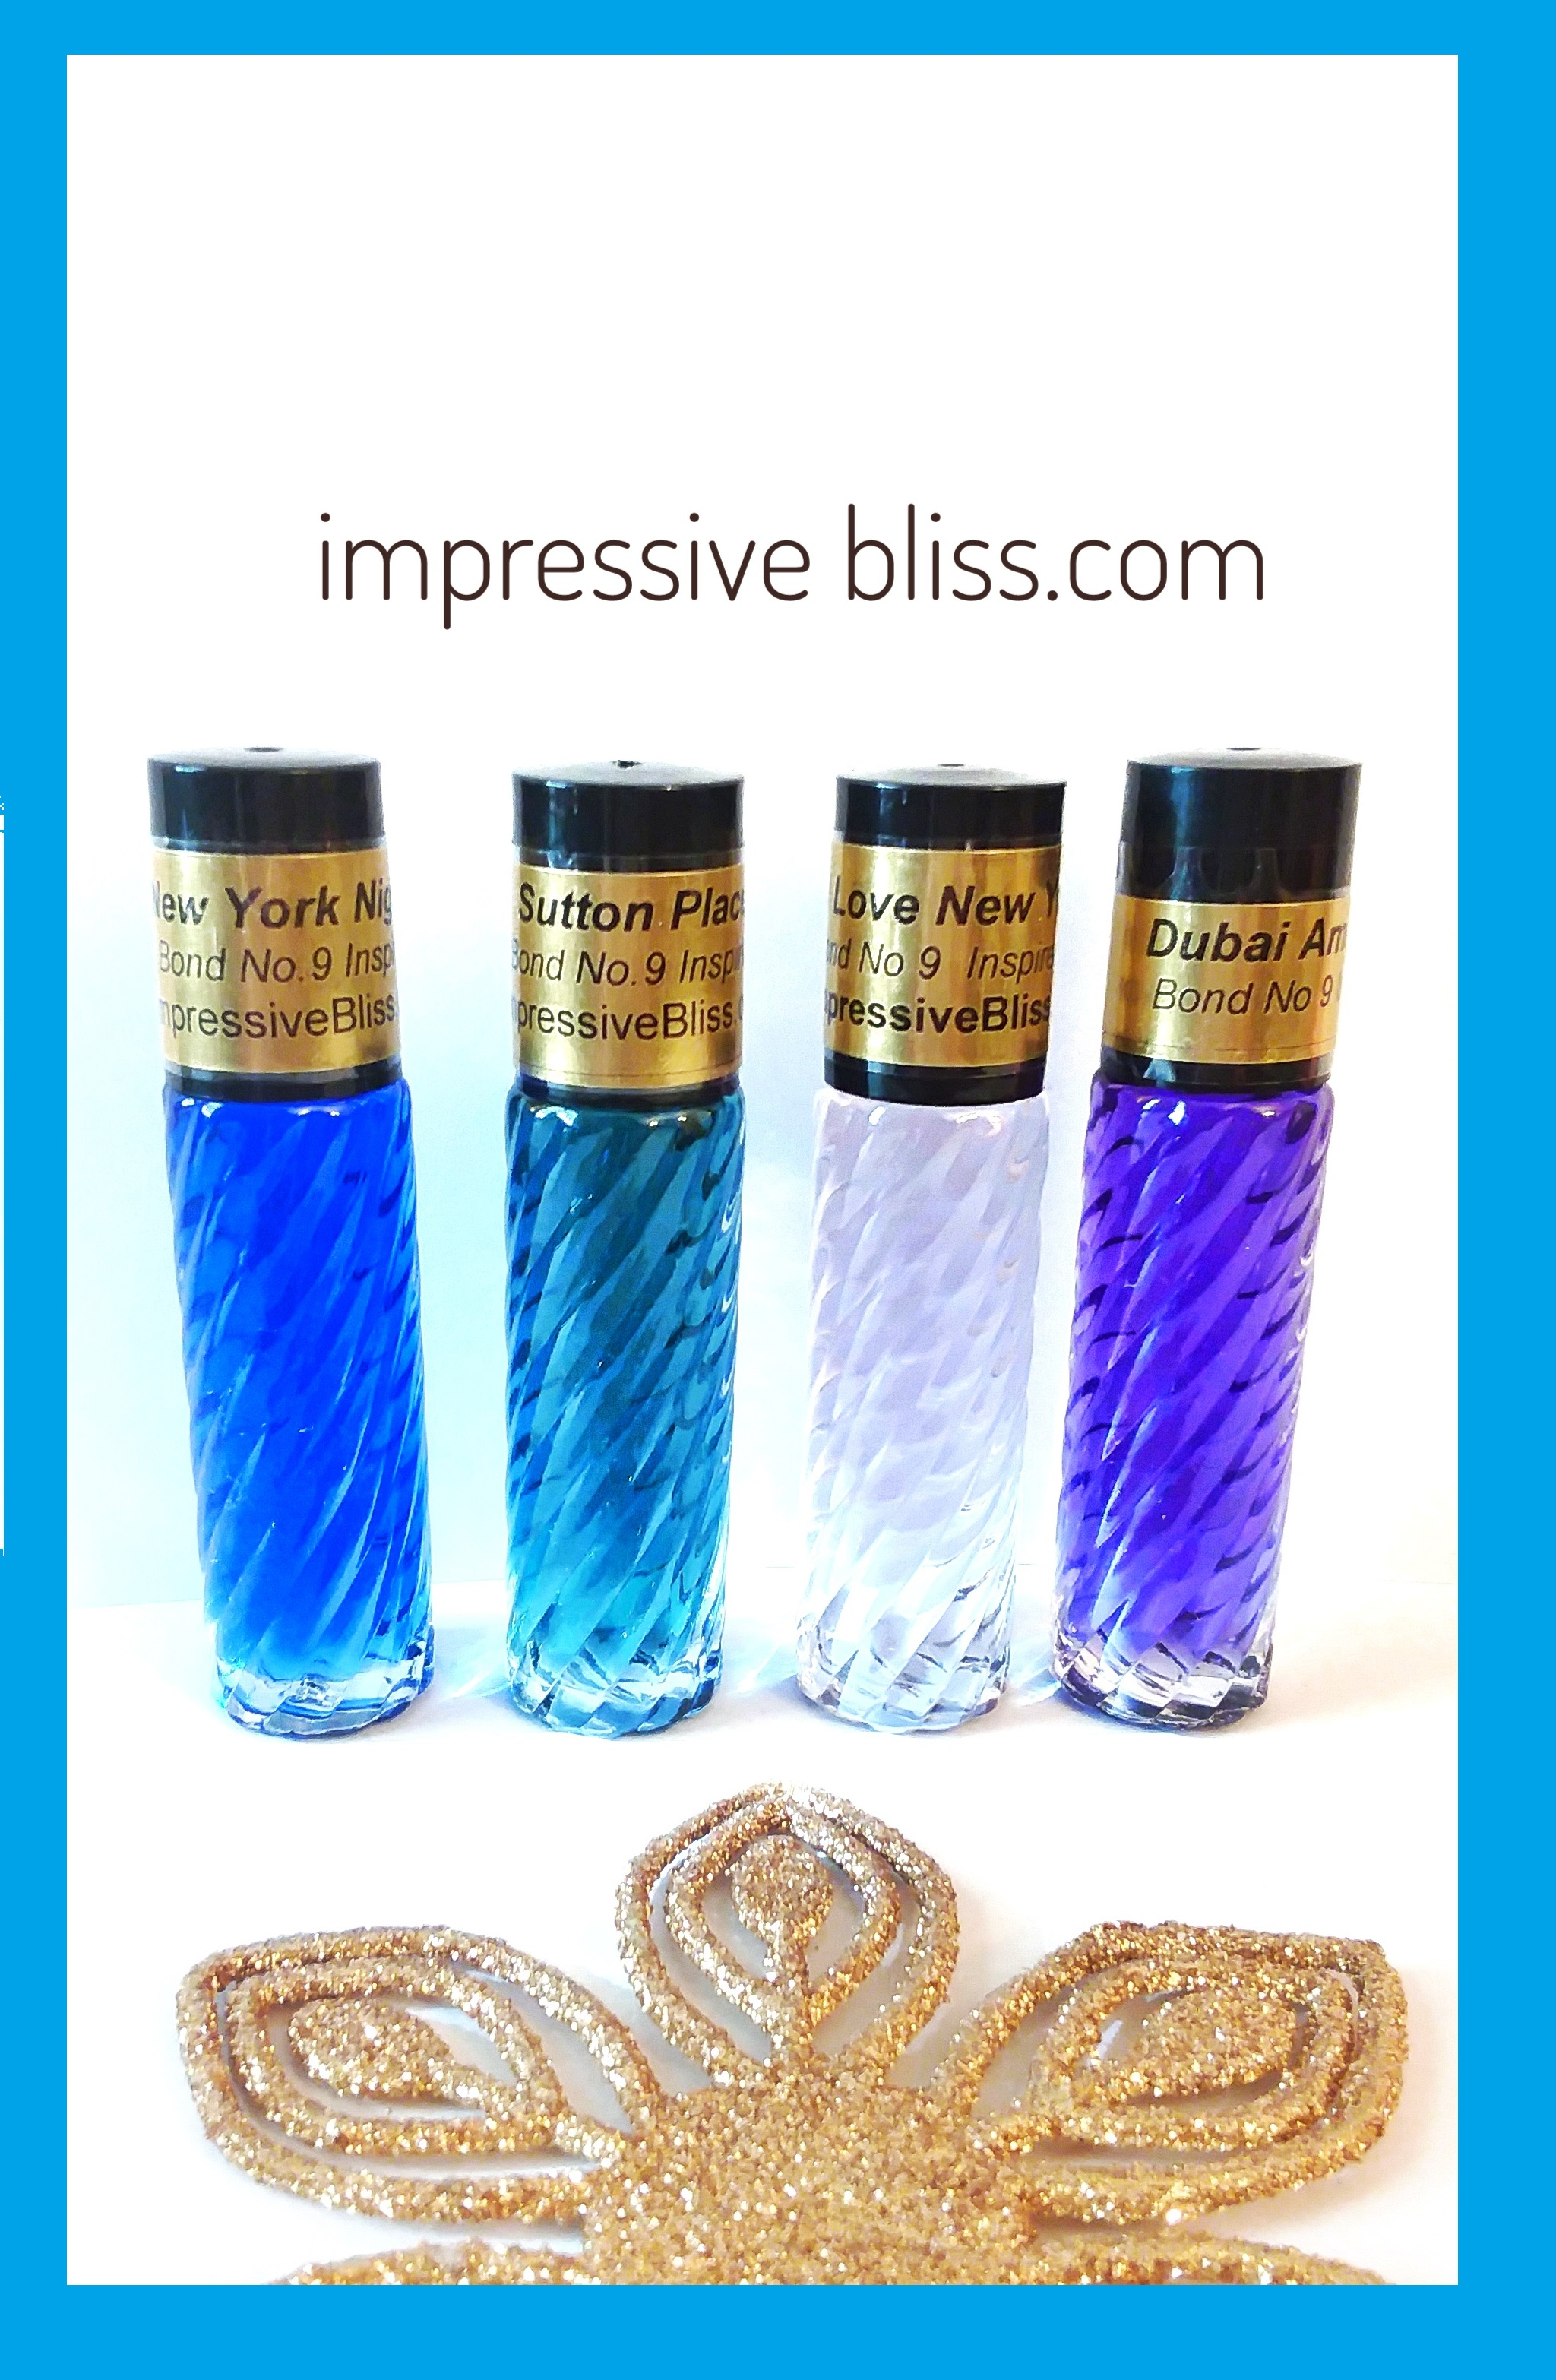 impressive Bliss swirl Perfume oil bottle 1